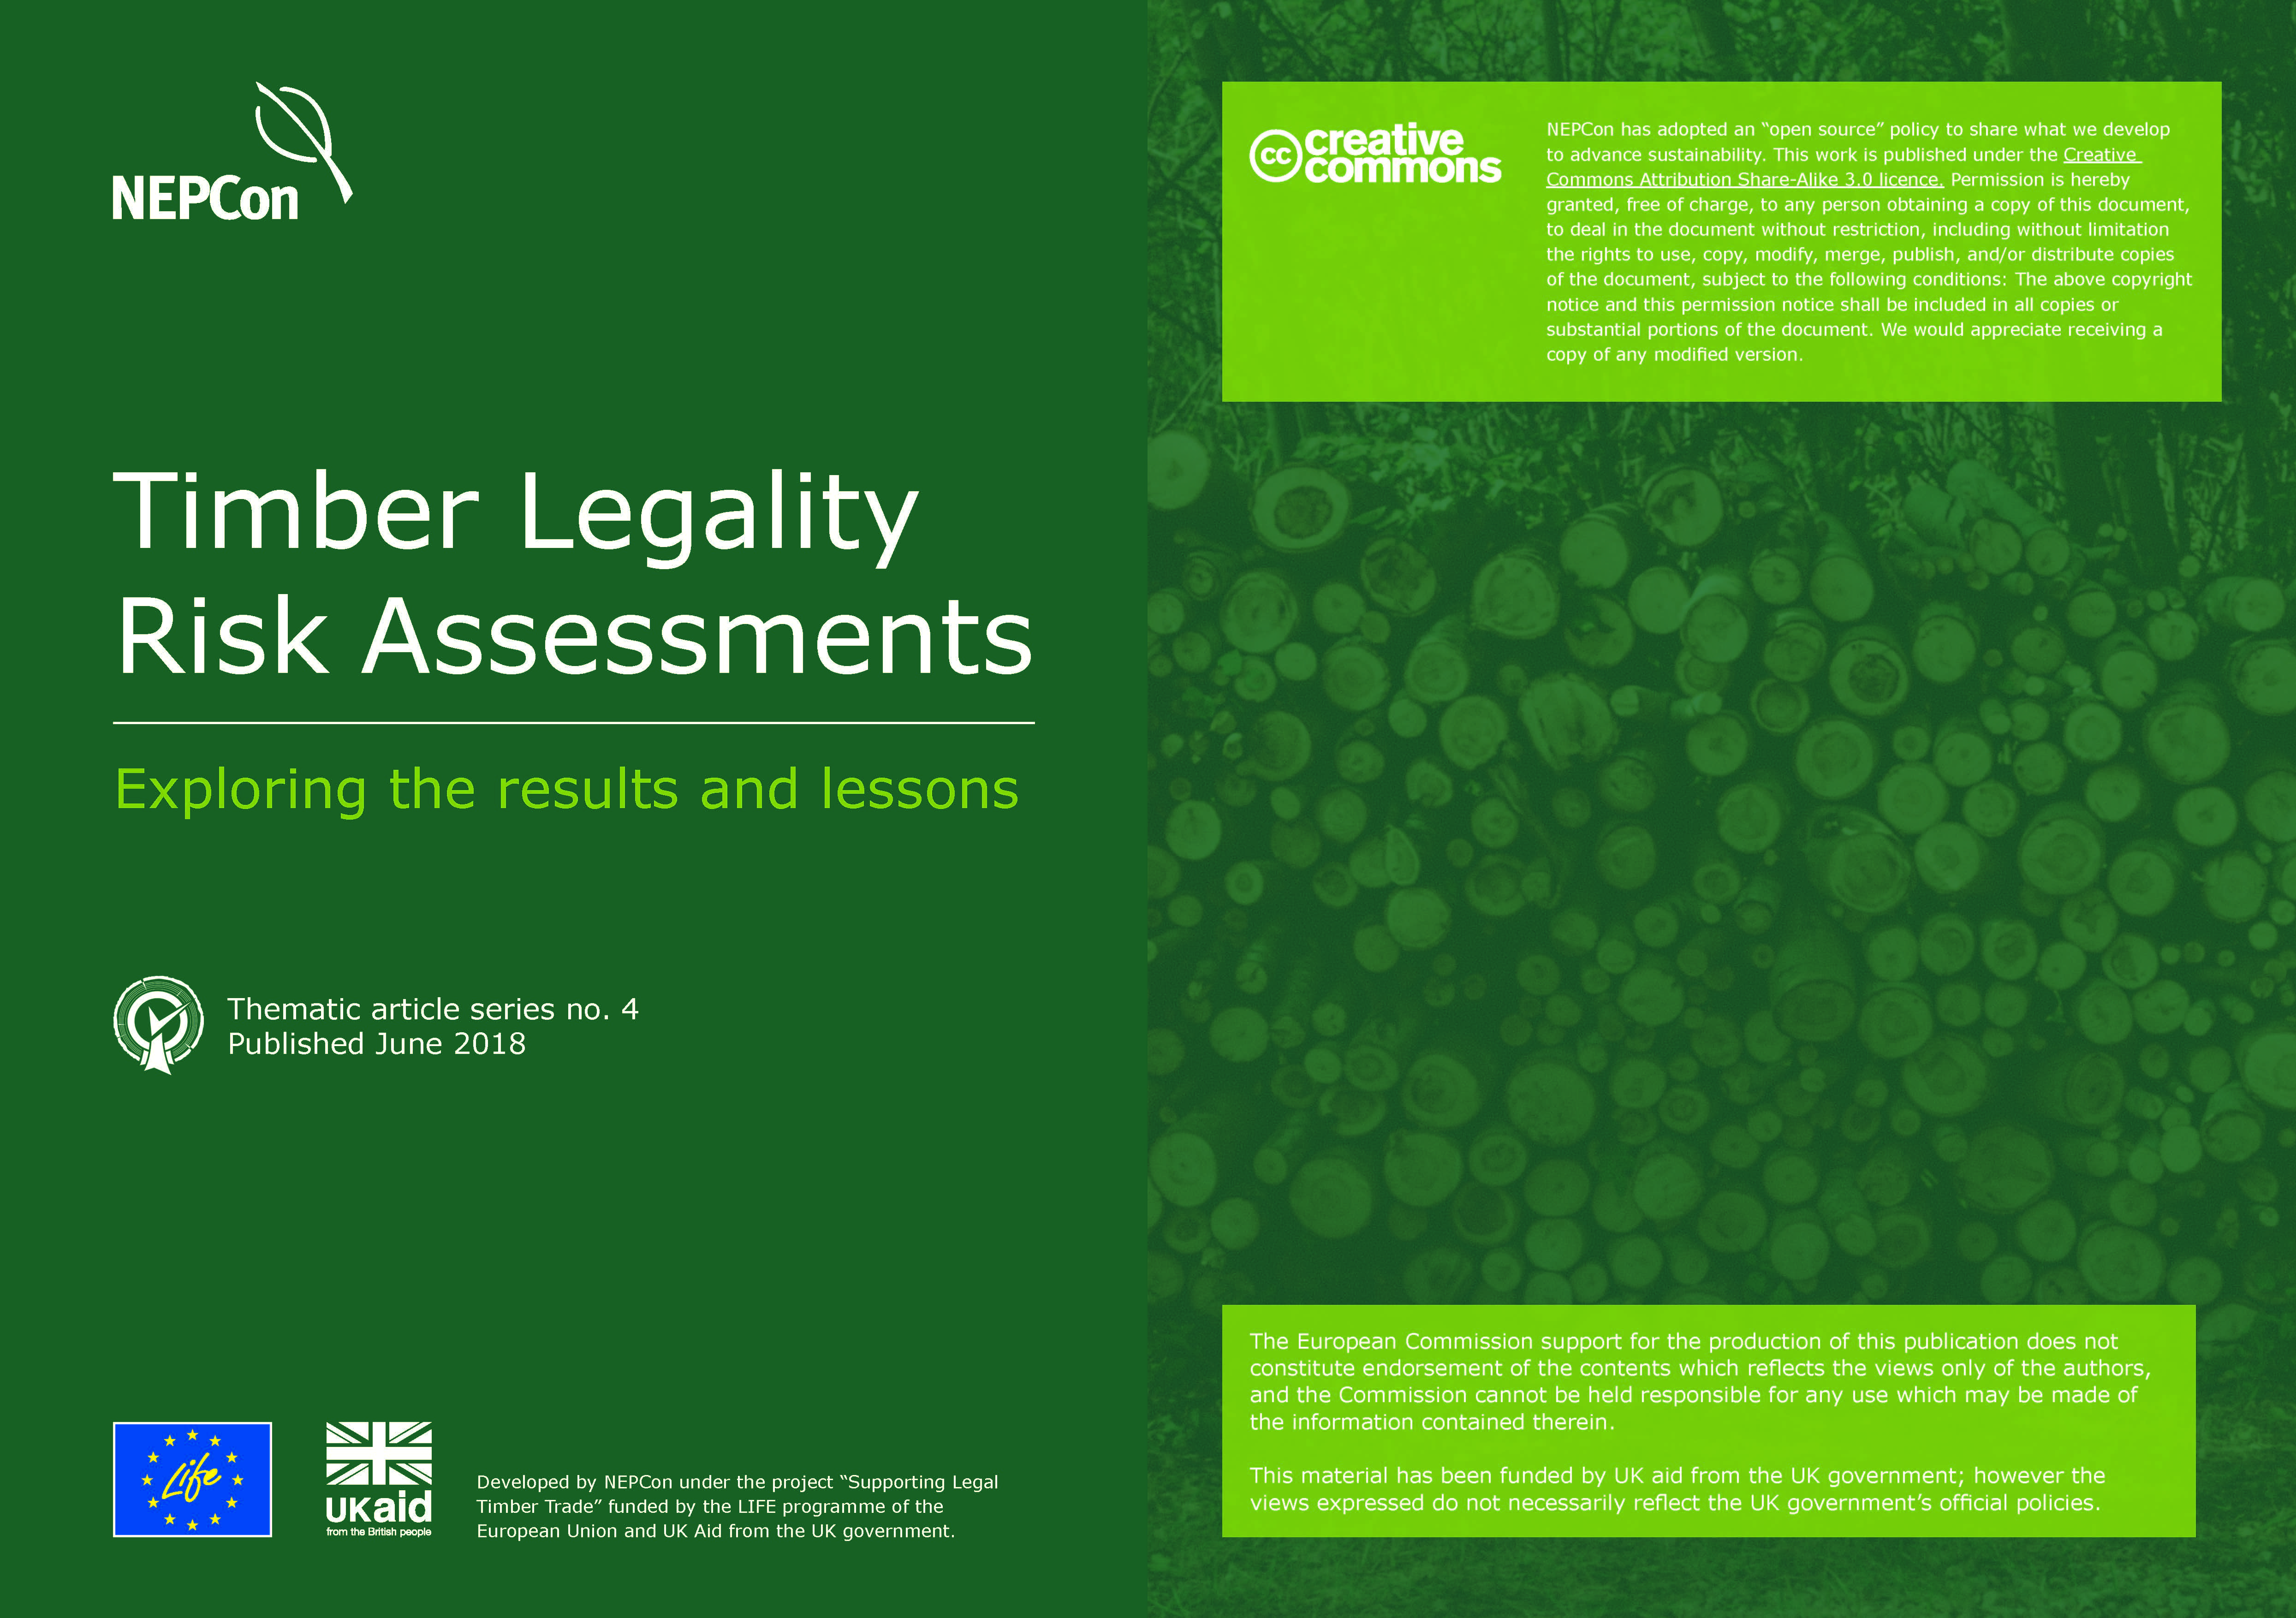 THEMATIC ARTICLE NO.4: TIMBER LEGALITY - EXPLORING THE RESULTS AND LESSONS